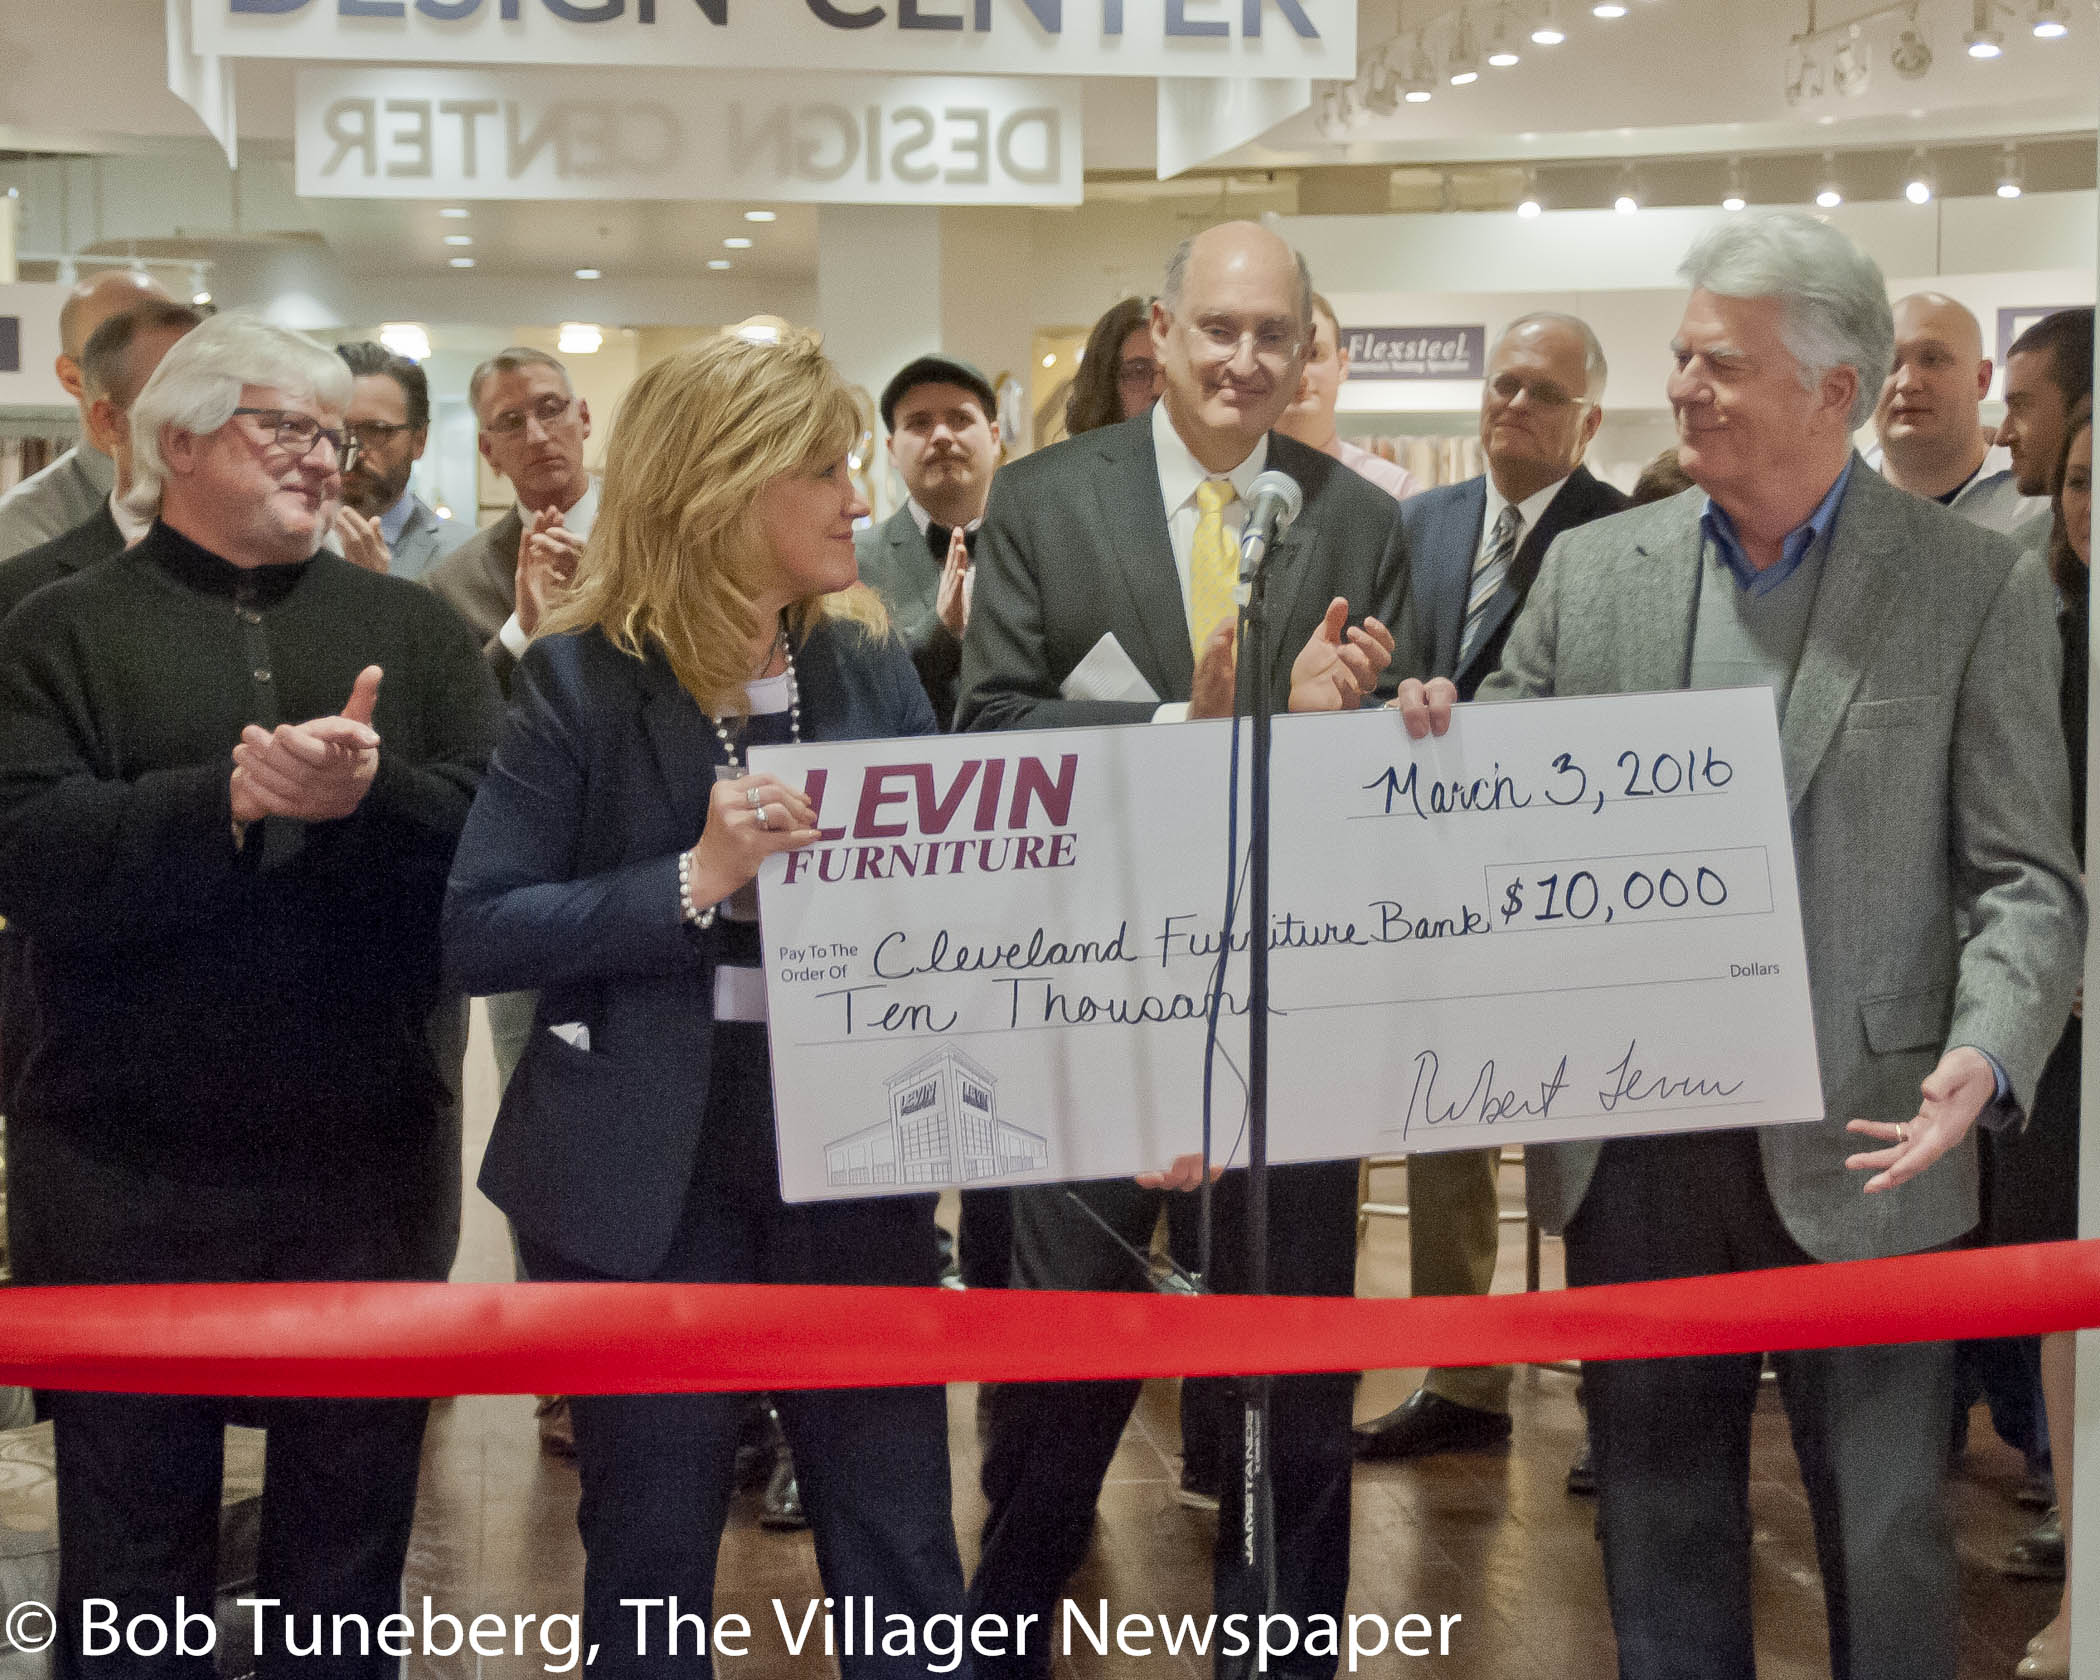 Ordinaire The Grand Opening Of Levin Furniture In Avon This Month Was A Celebration  For The Community As Well As Charitable Organizations Supported By The  Store.